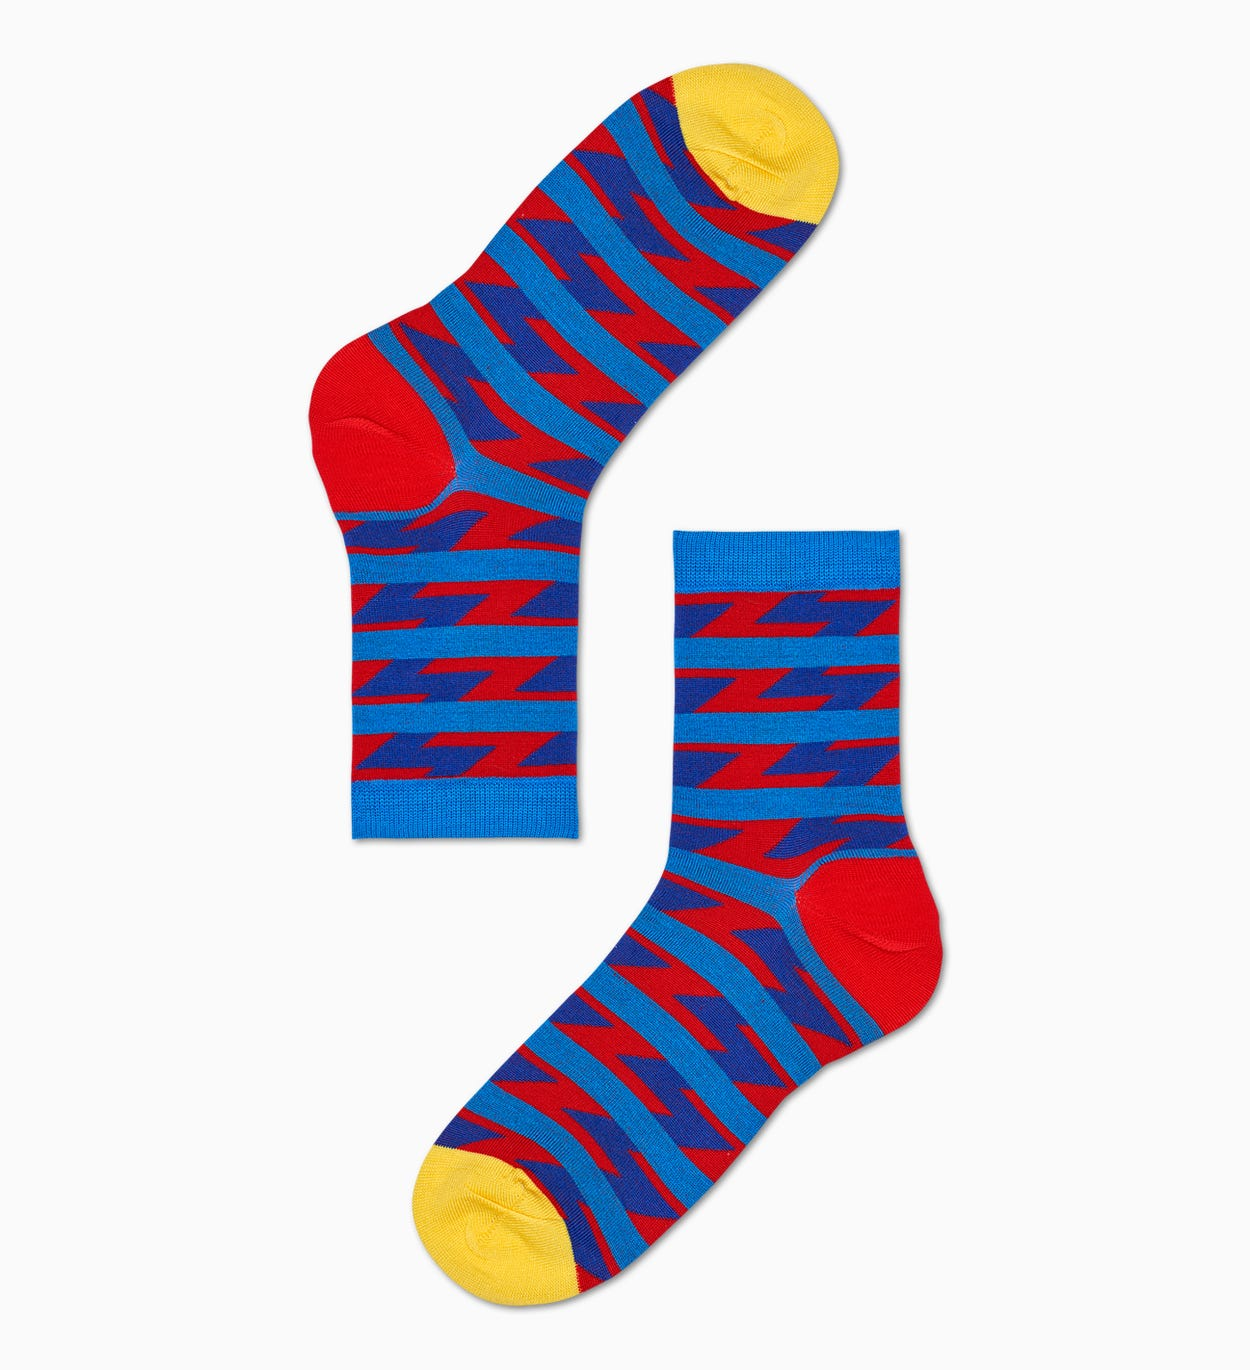 Women's Ankle Socks: Ray - Red & Blue | Hysteria